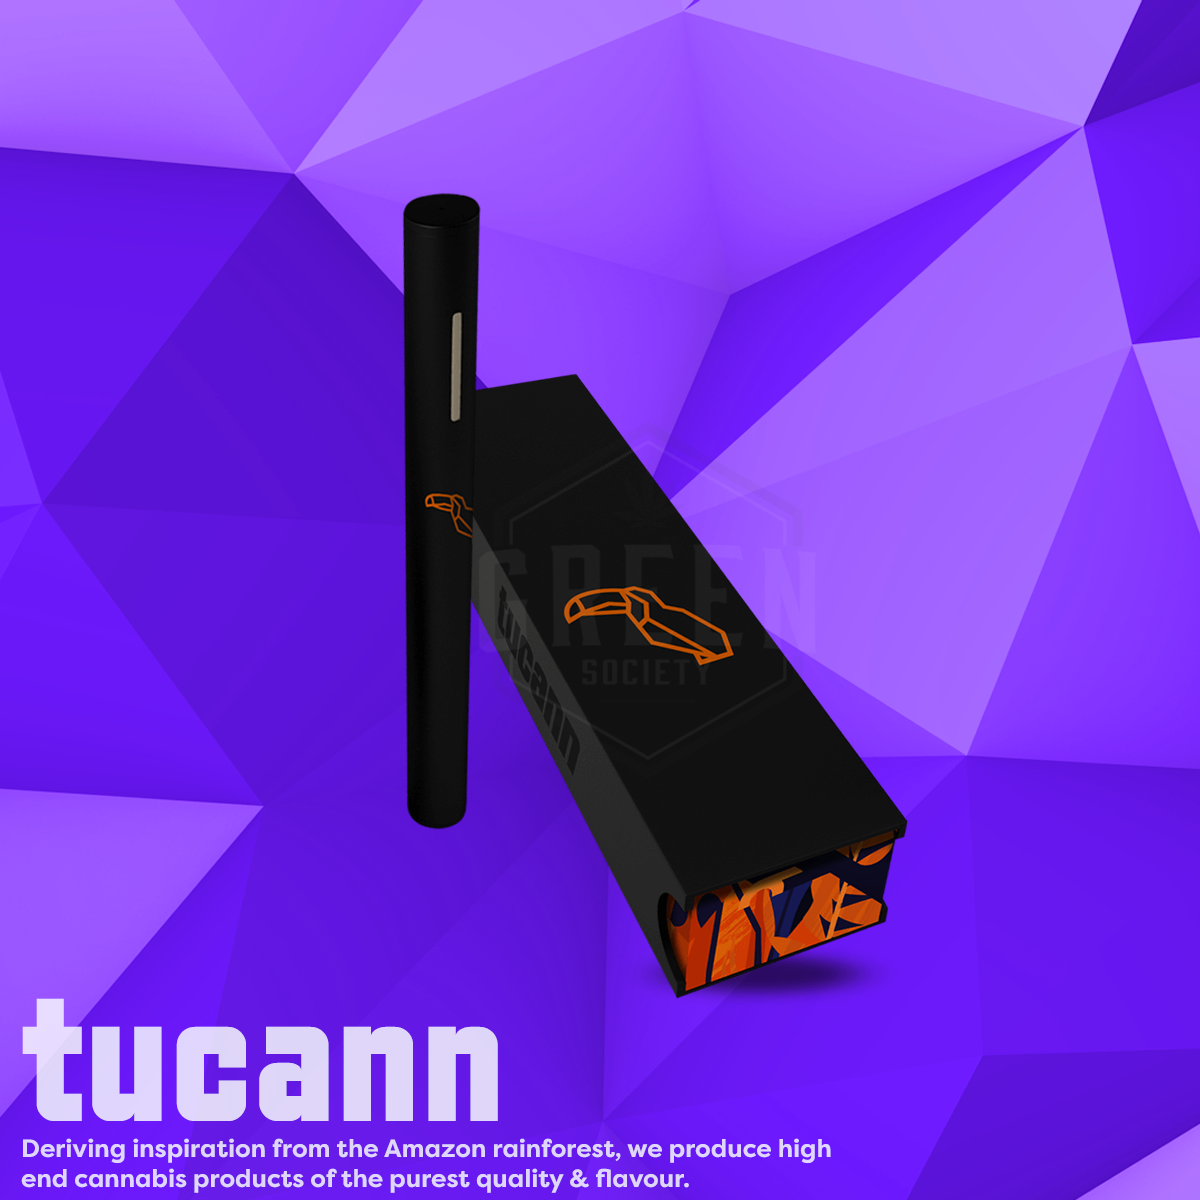 Tucann Distillate Vaporizer Pens by Green Society - Image © 2018 Green Society. All Rights Reserved.